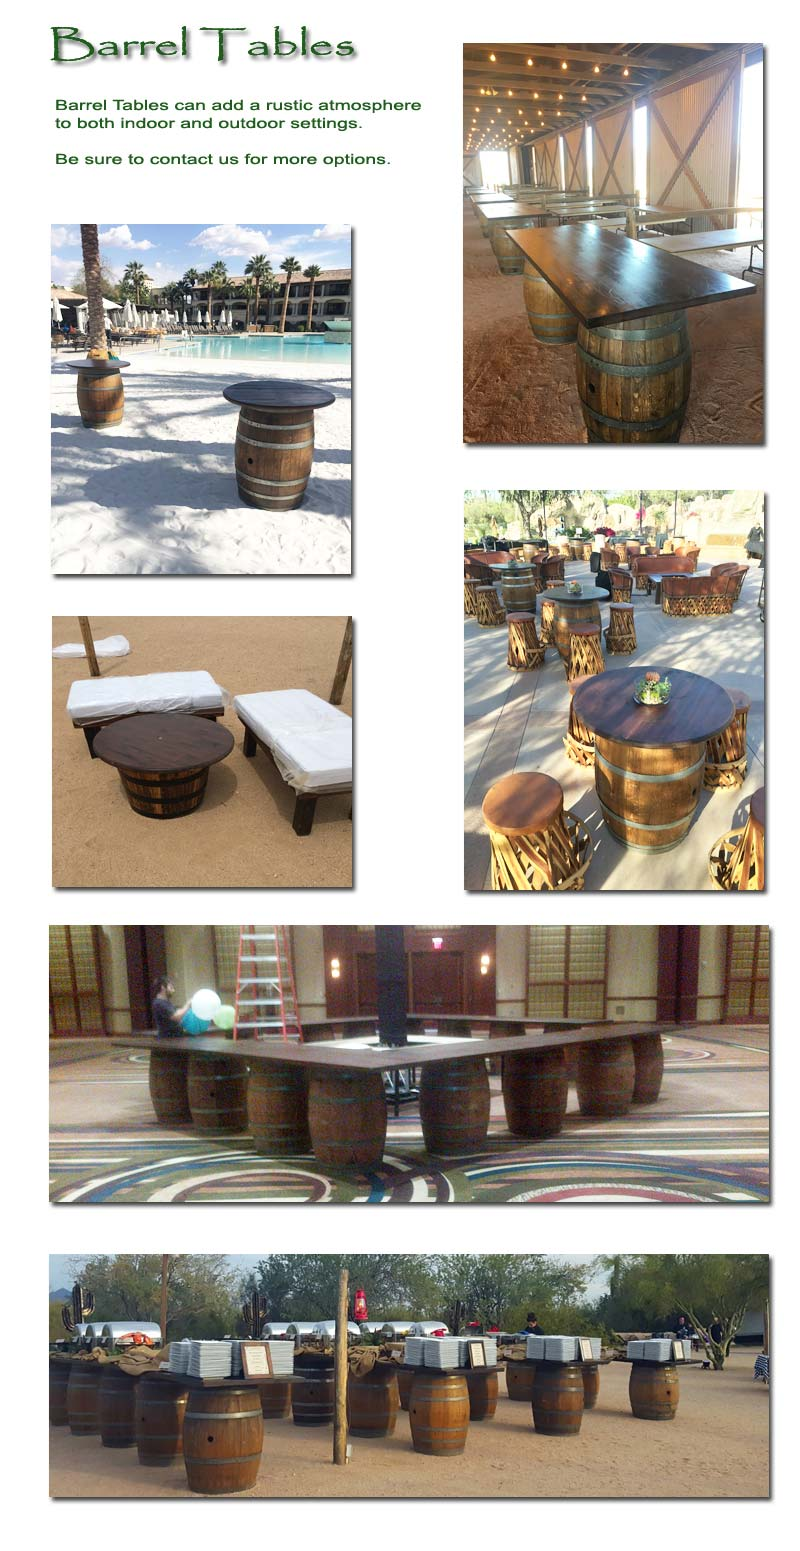 Barrel Tables can add a rustic atmosphere